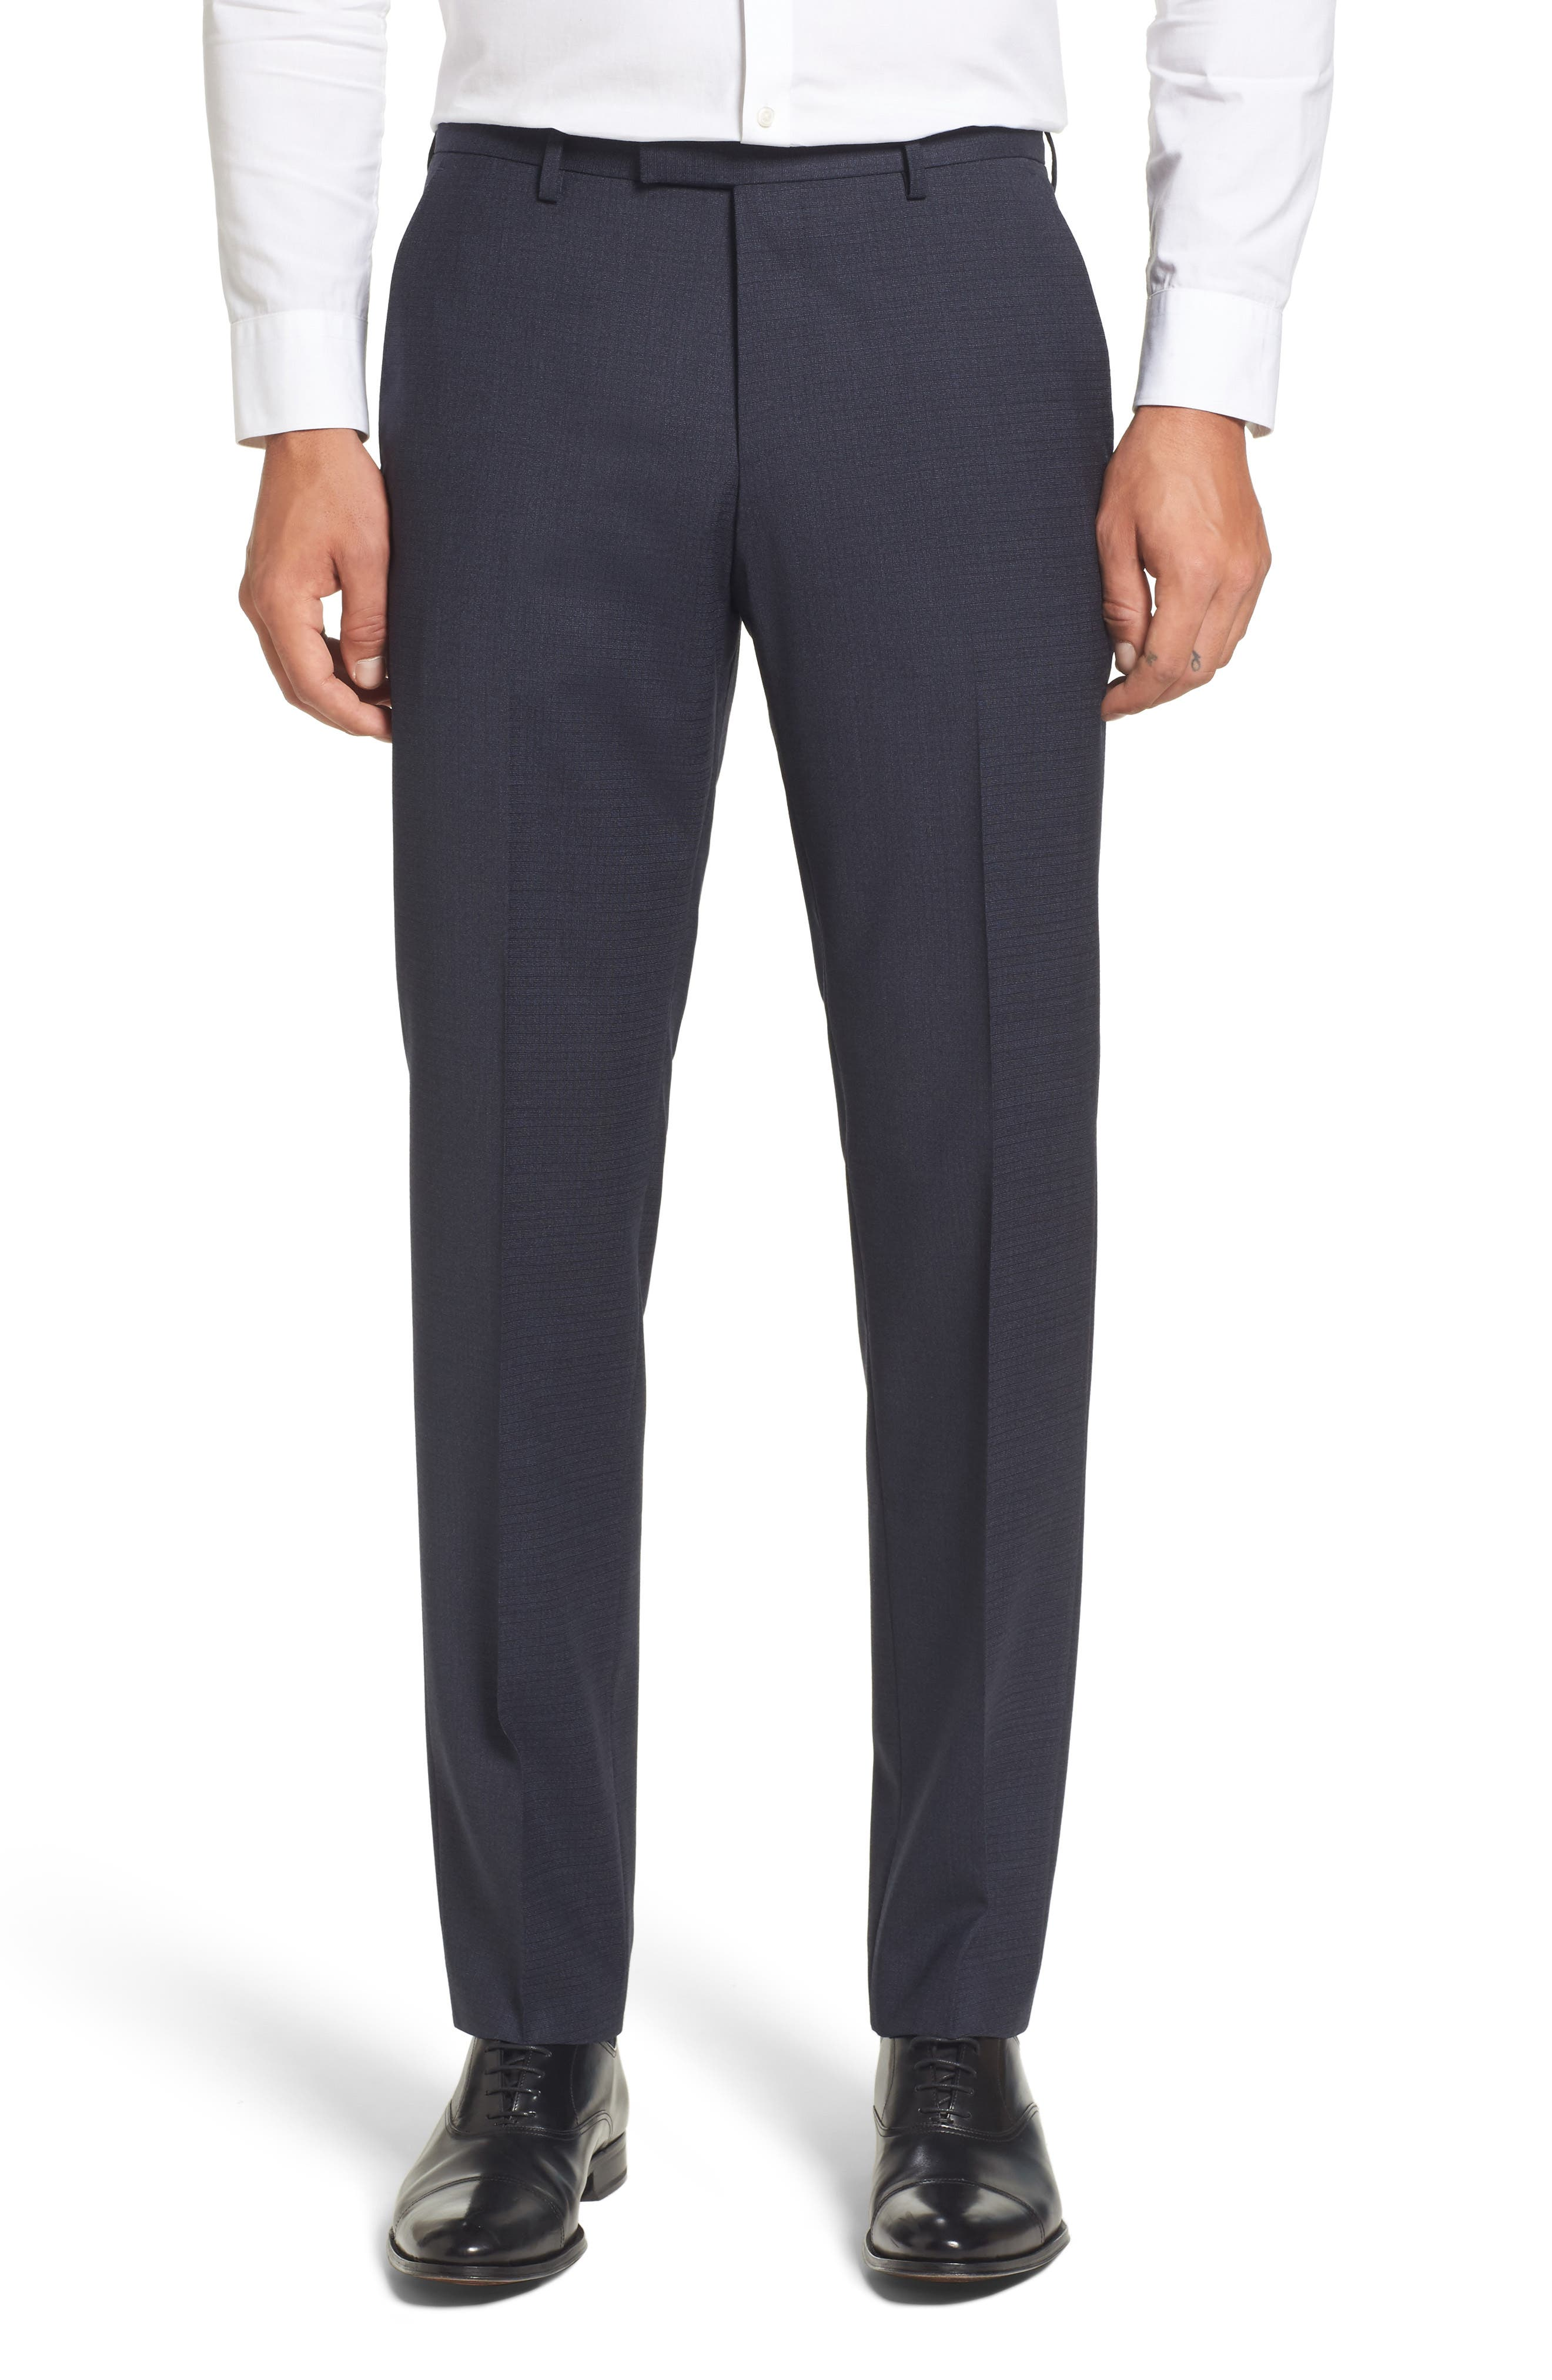 Leenon Classic Fit Plaid Stretch Wool Trousers,                         Main,                         color,